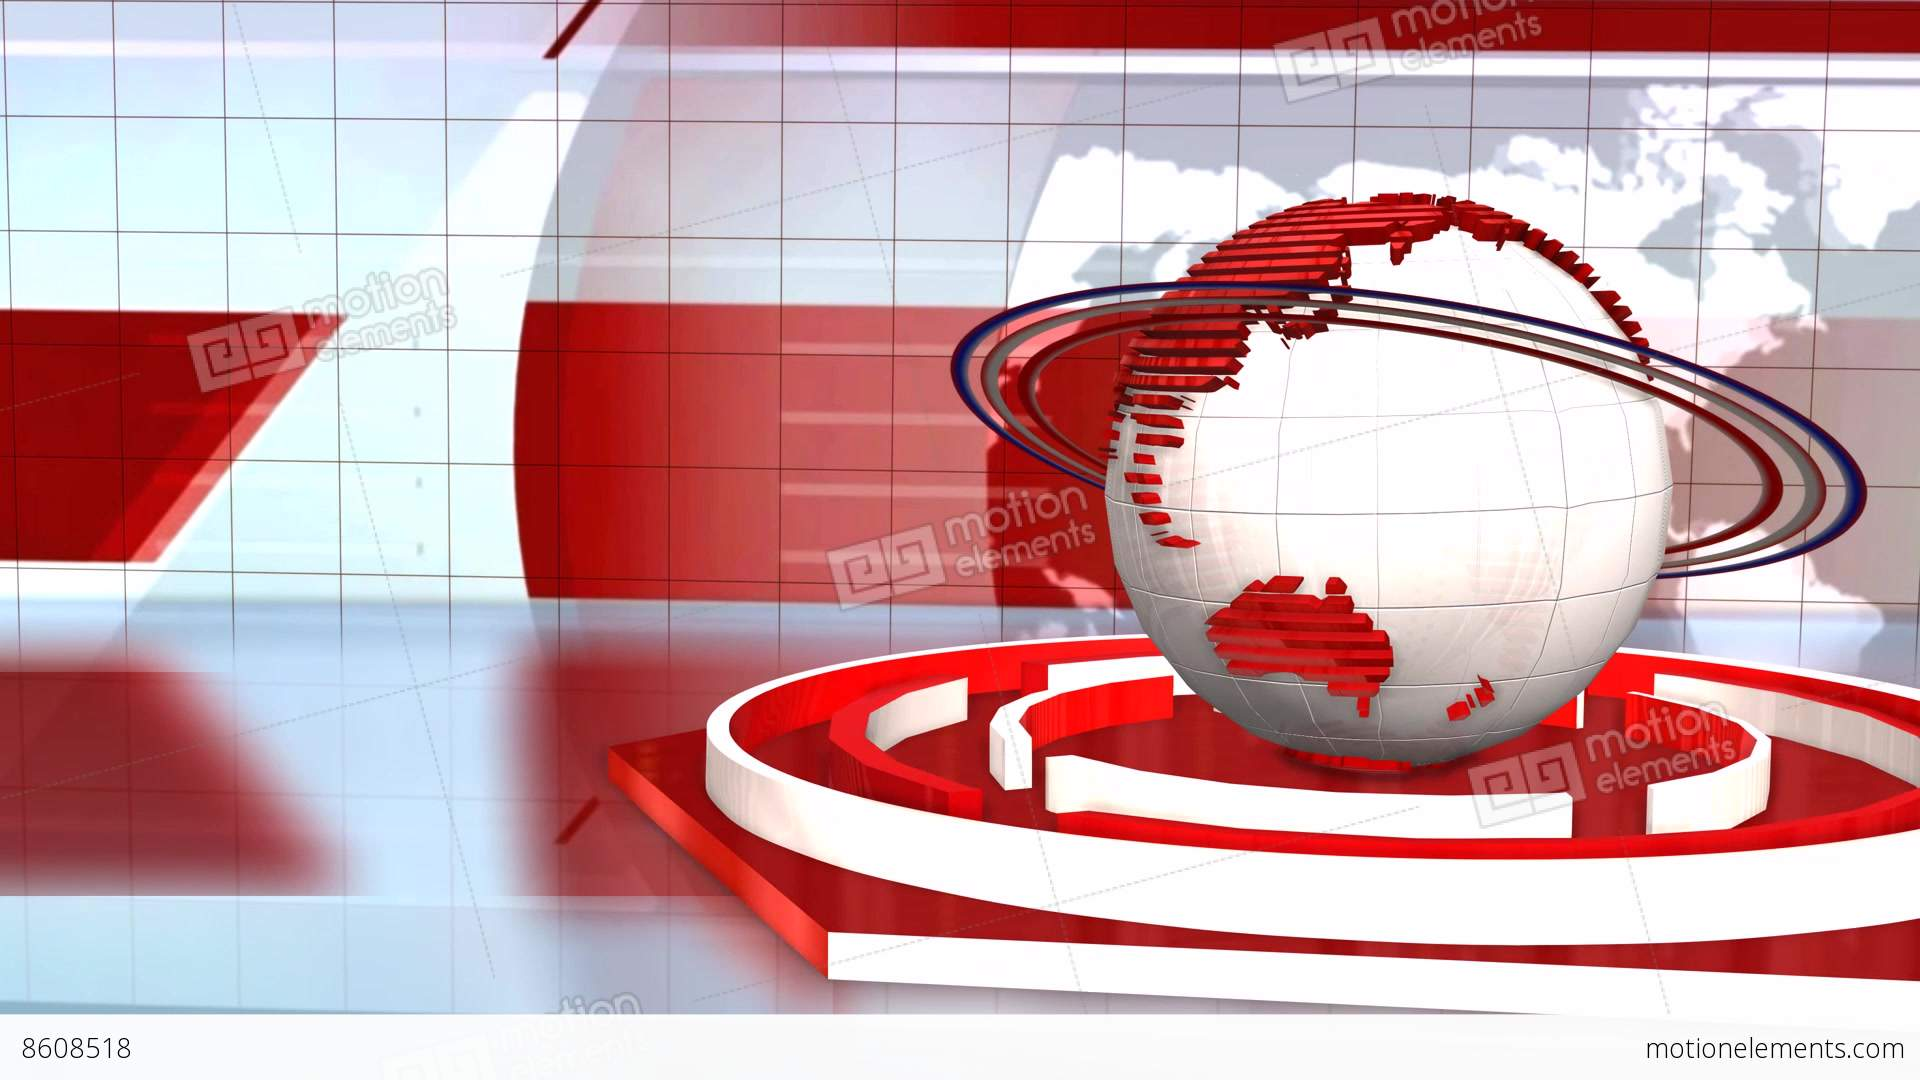 News Broadcast Background World Animation Stock Video Footage